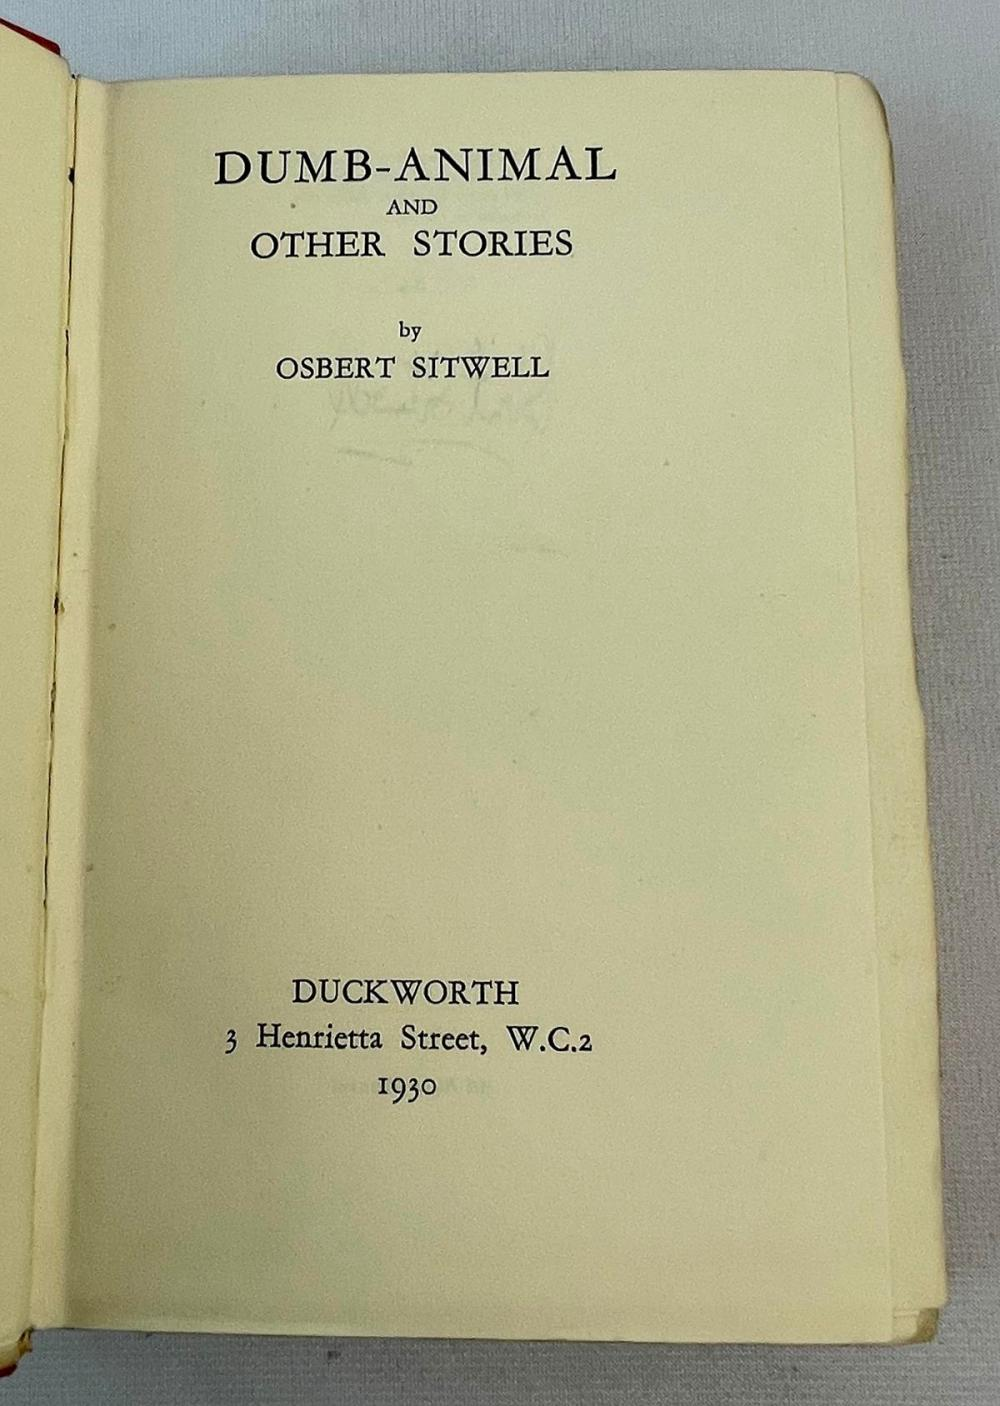 1930 Dumb - Animal & Other Stories by Osbert Sitwell SIGNED 34/110 FIRST EDITION